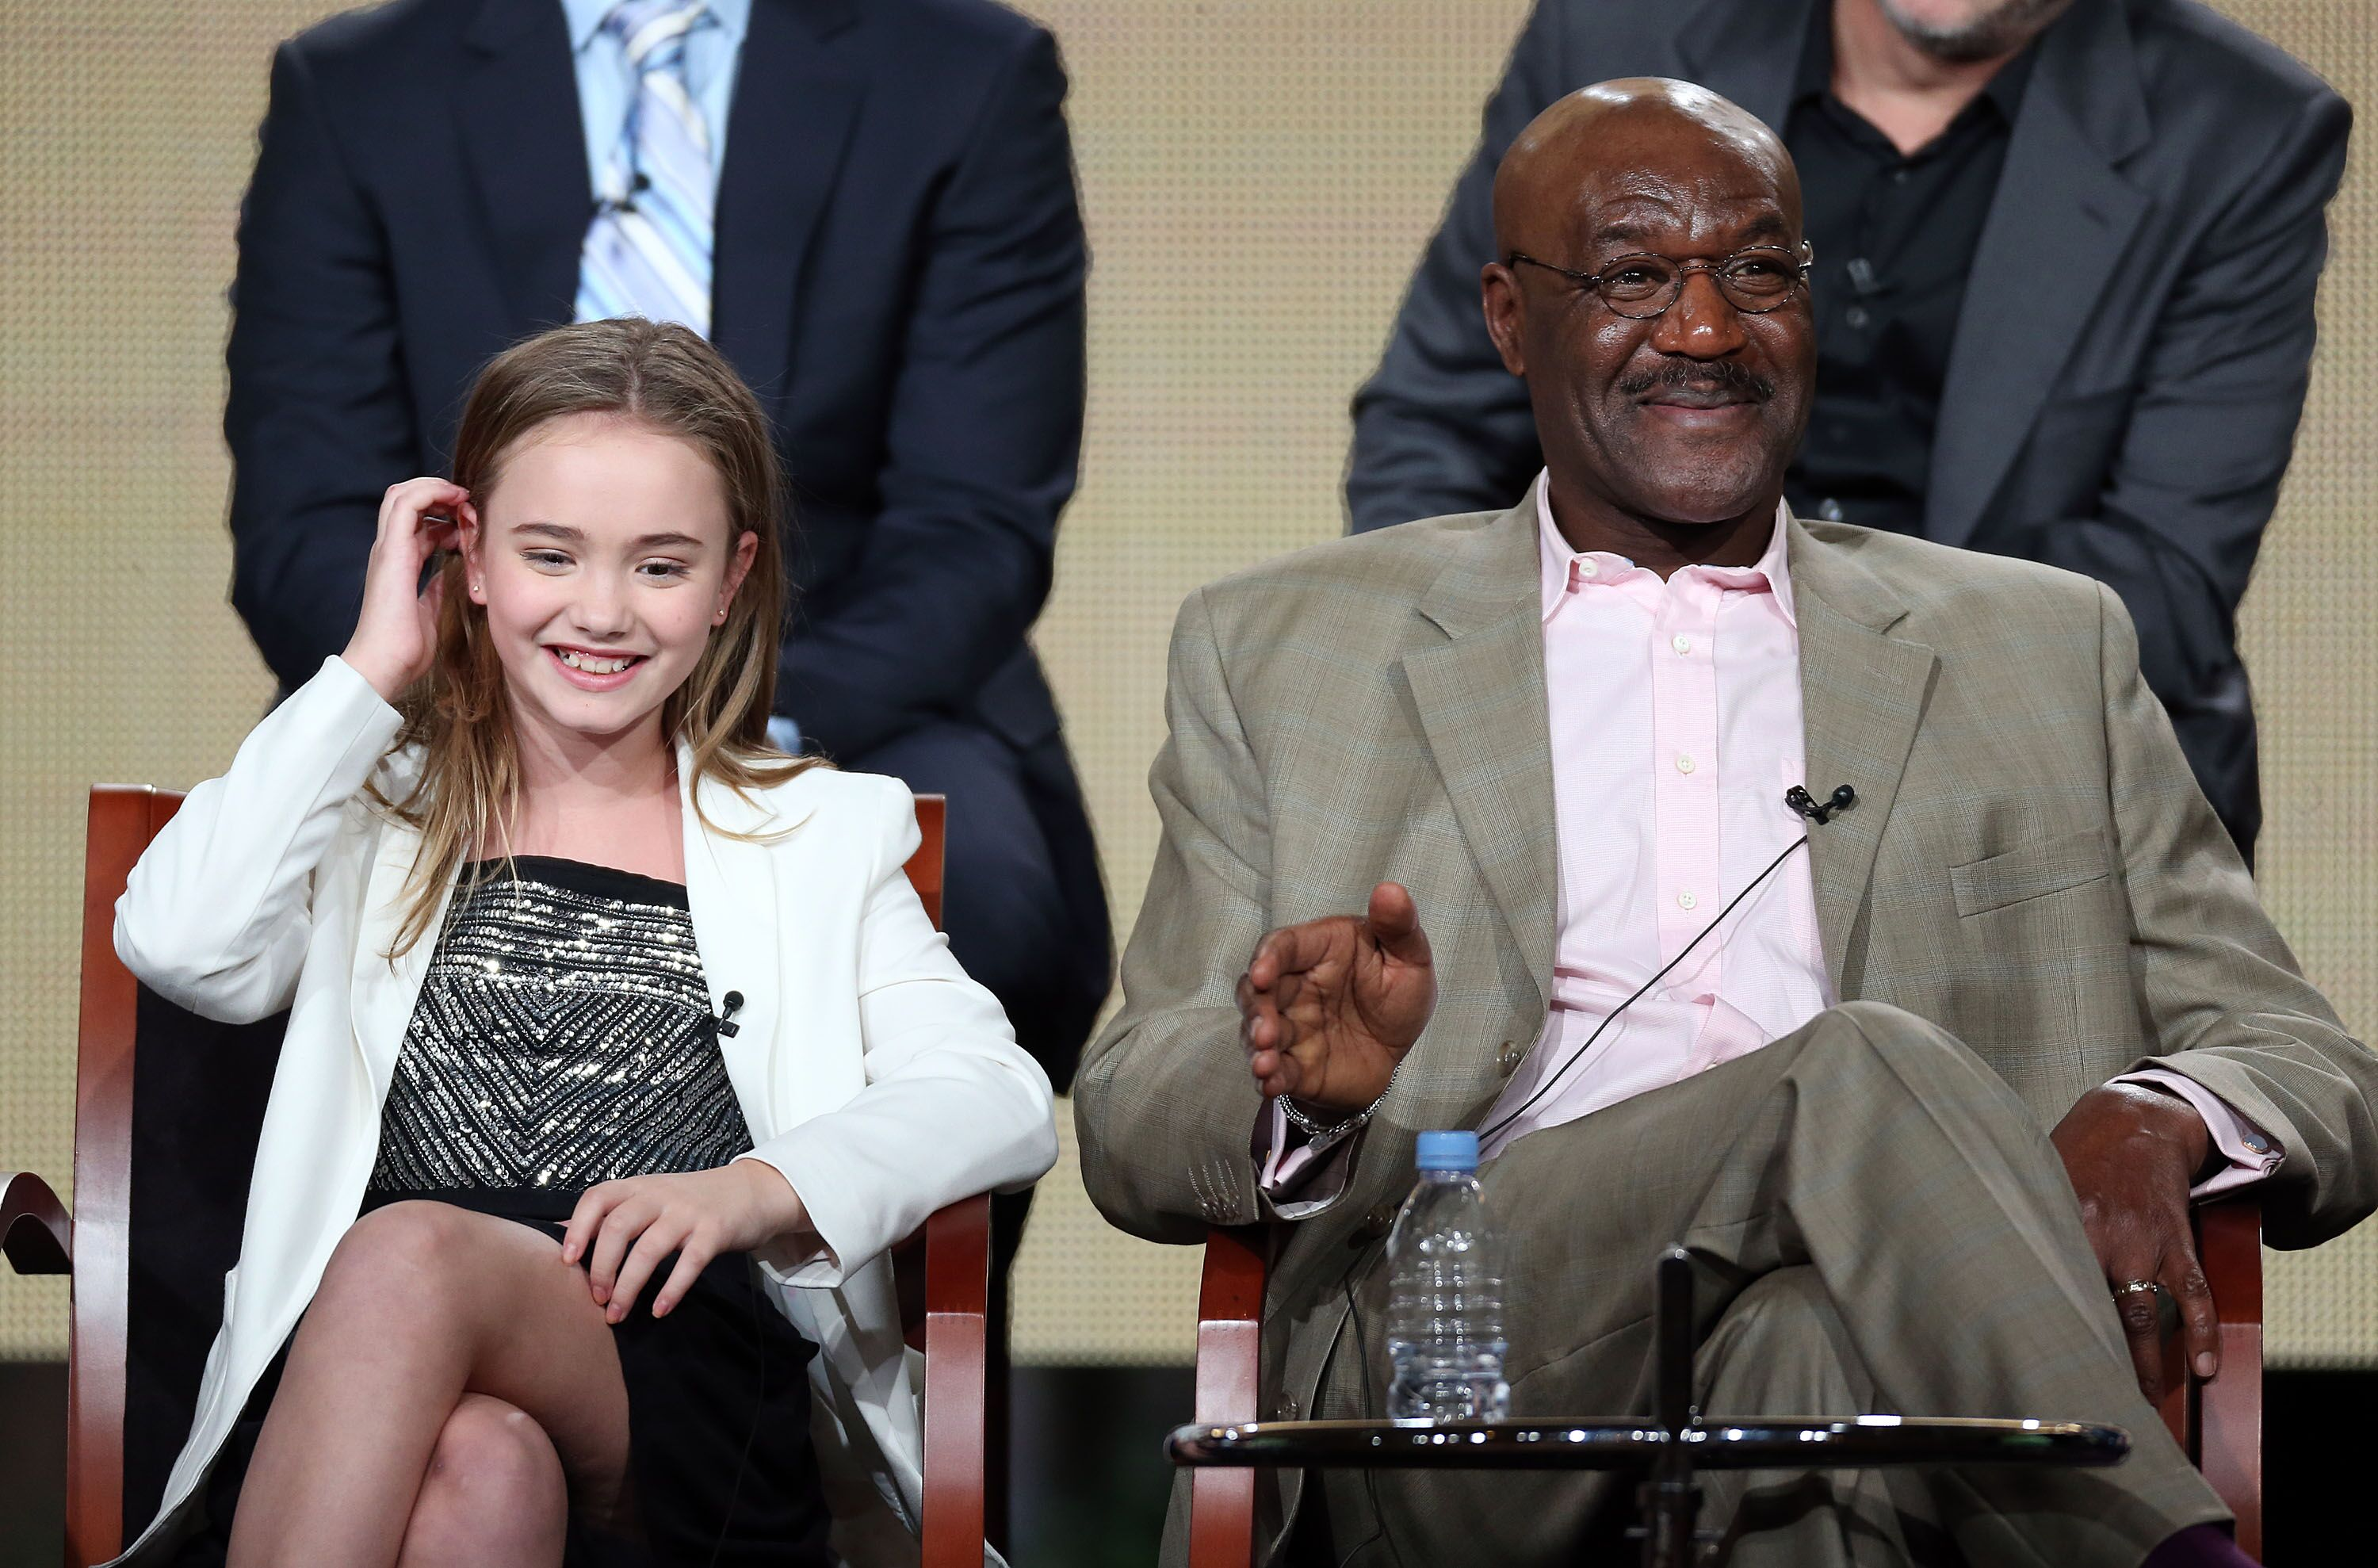 Actress Johnny Sequoyah and actor Delroy Lindo during the NBC portion of the 2014 Television Critics Association Press Tour at the Langham Hotel on January 19, 2014 in Pasadena, California | Photo: Getty Images